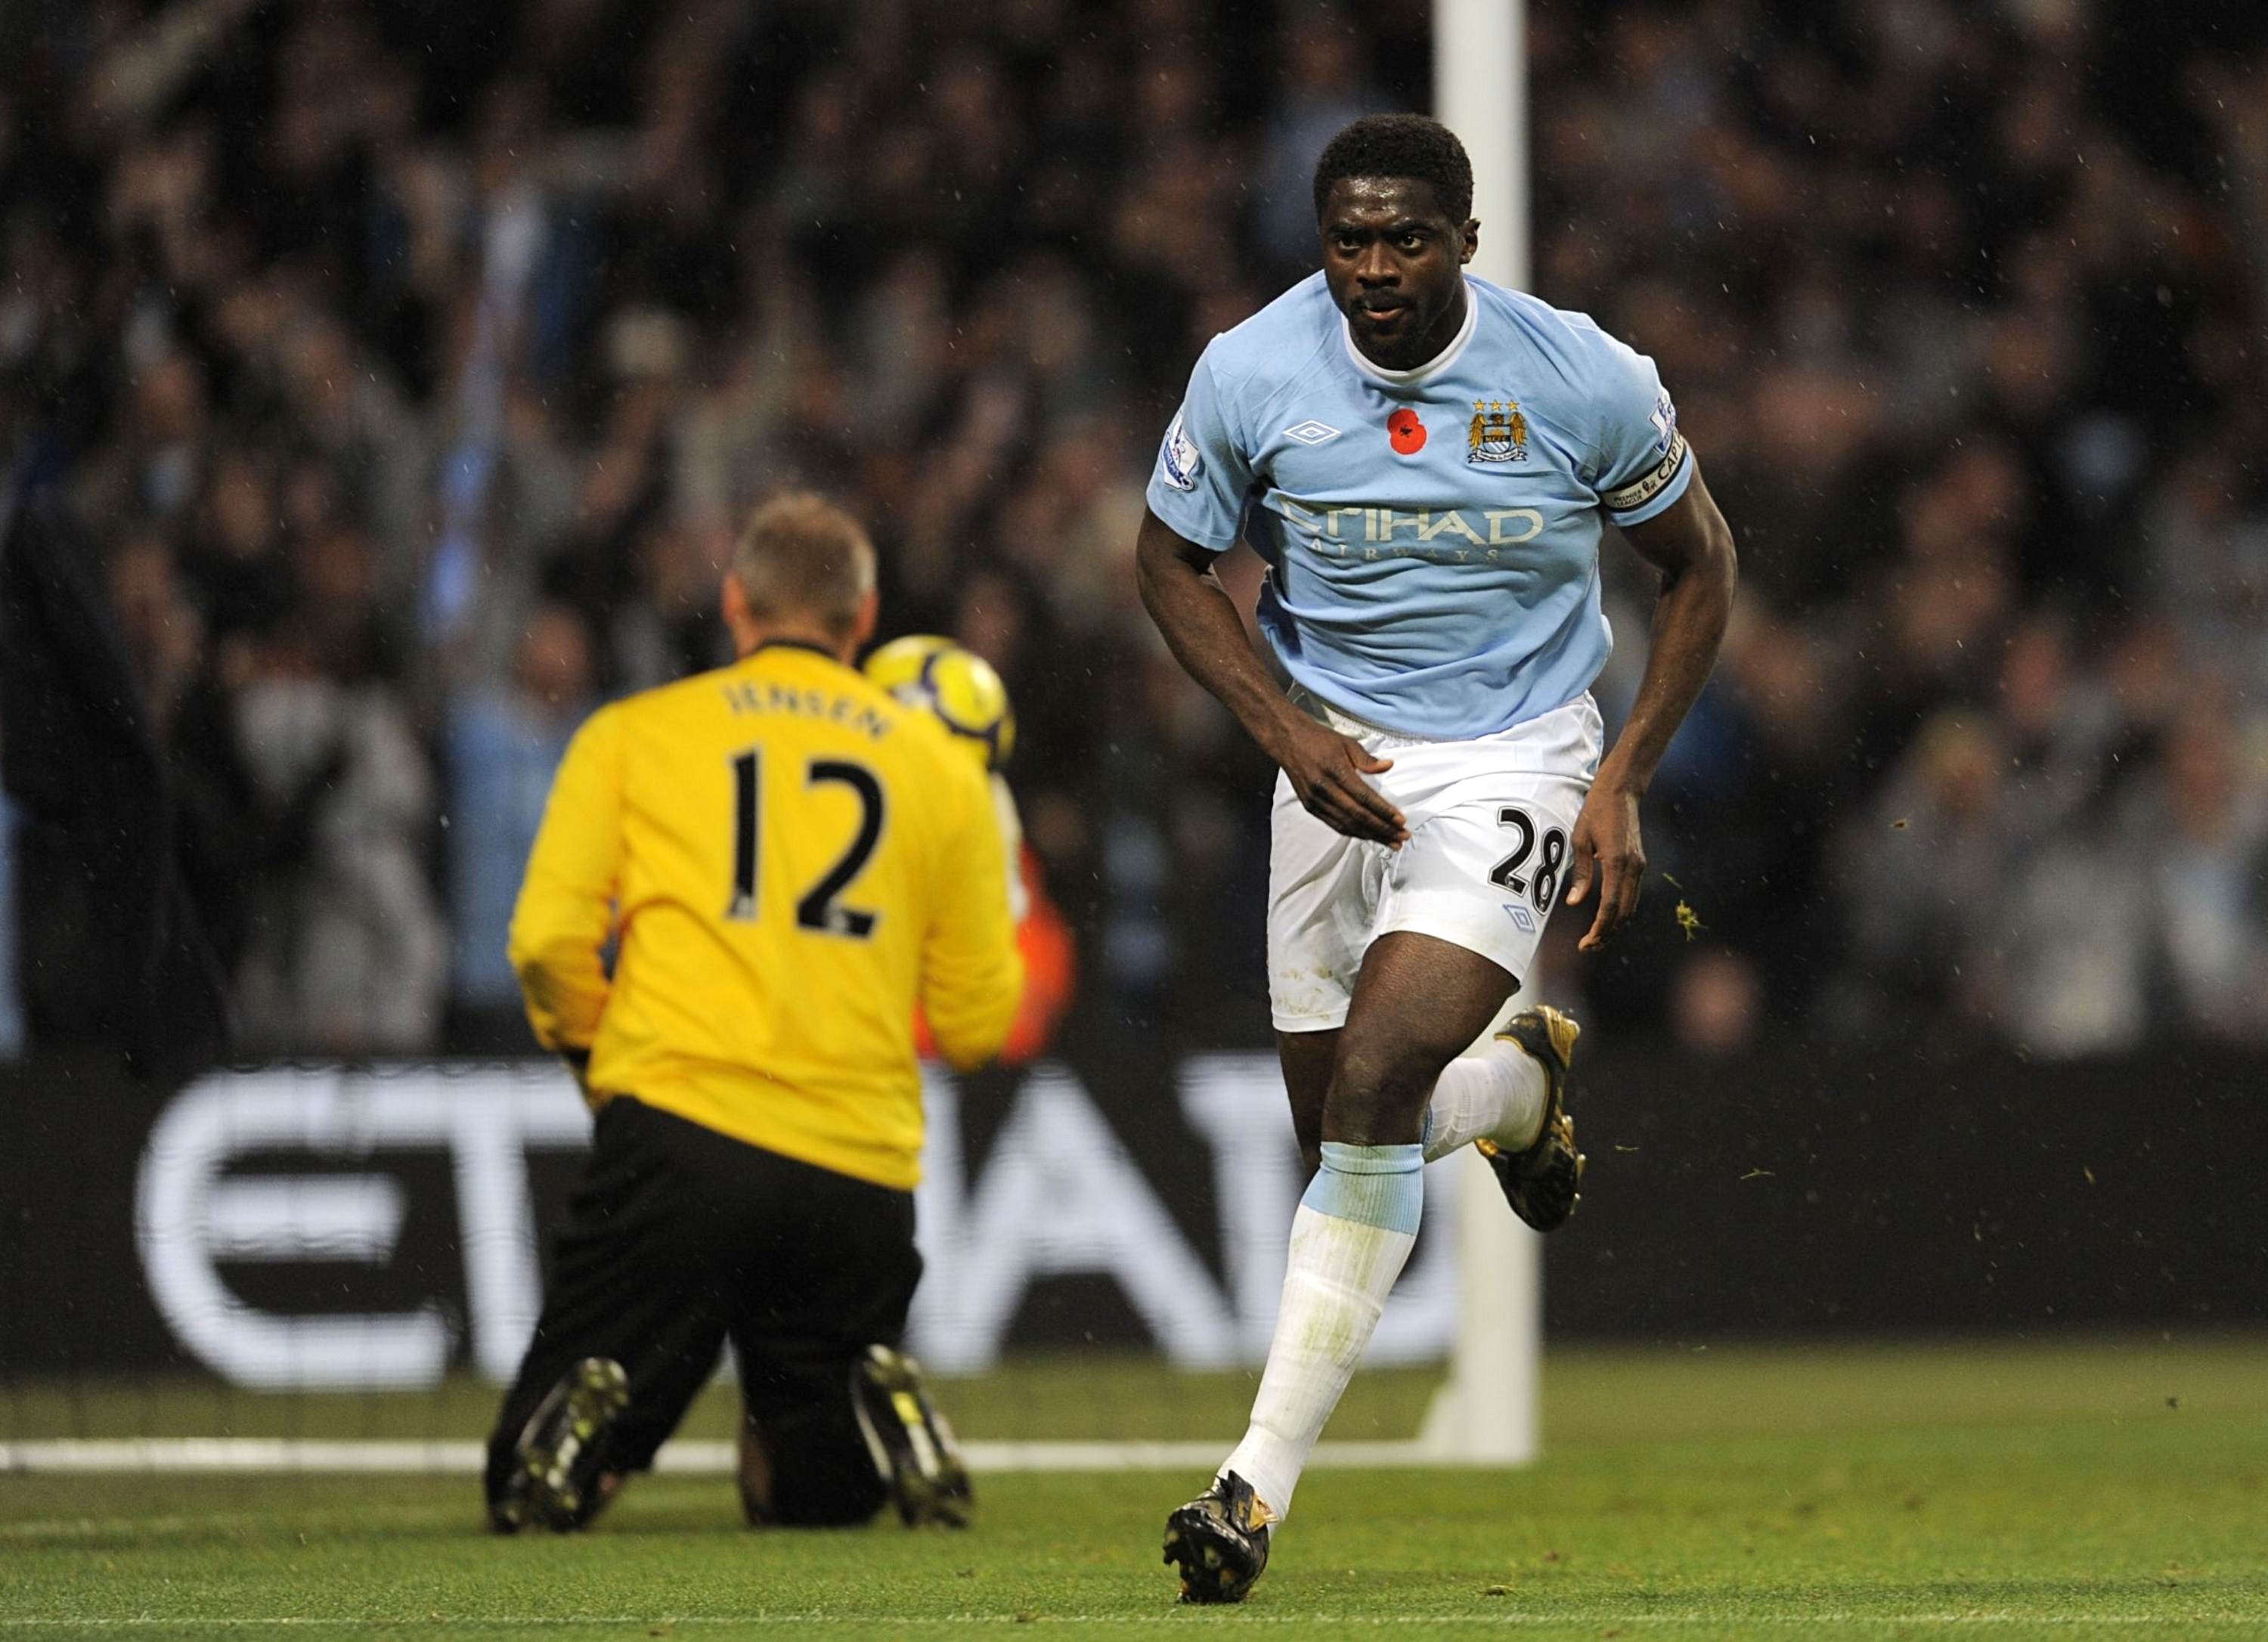 Kolo Toure wheels away to celebrate scoring for Manchester City